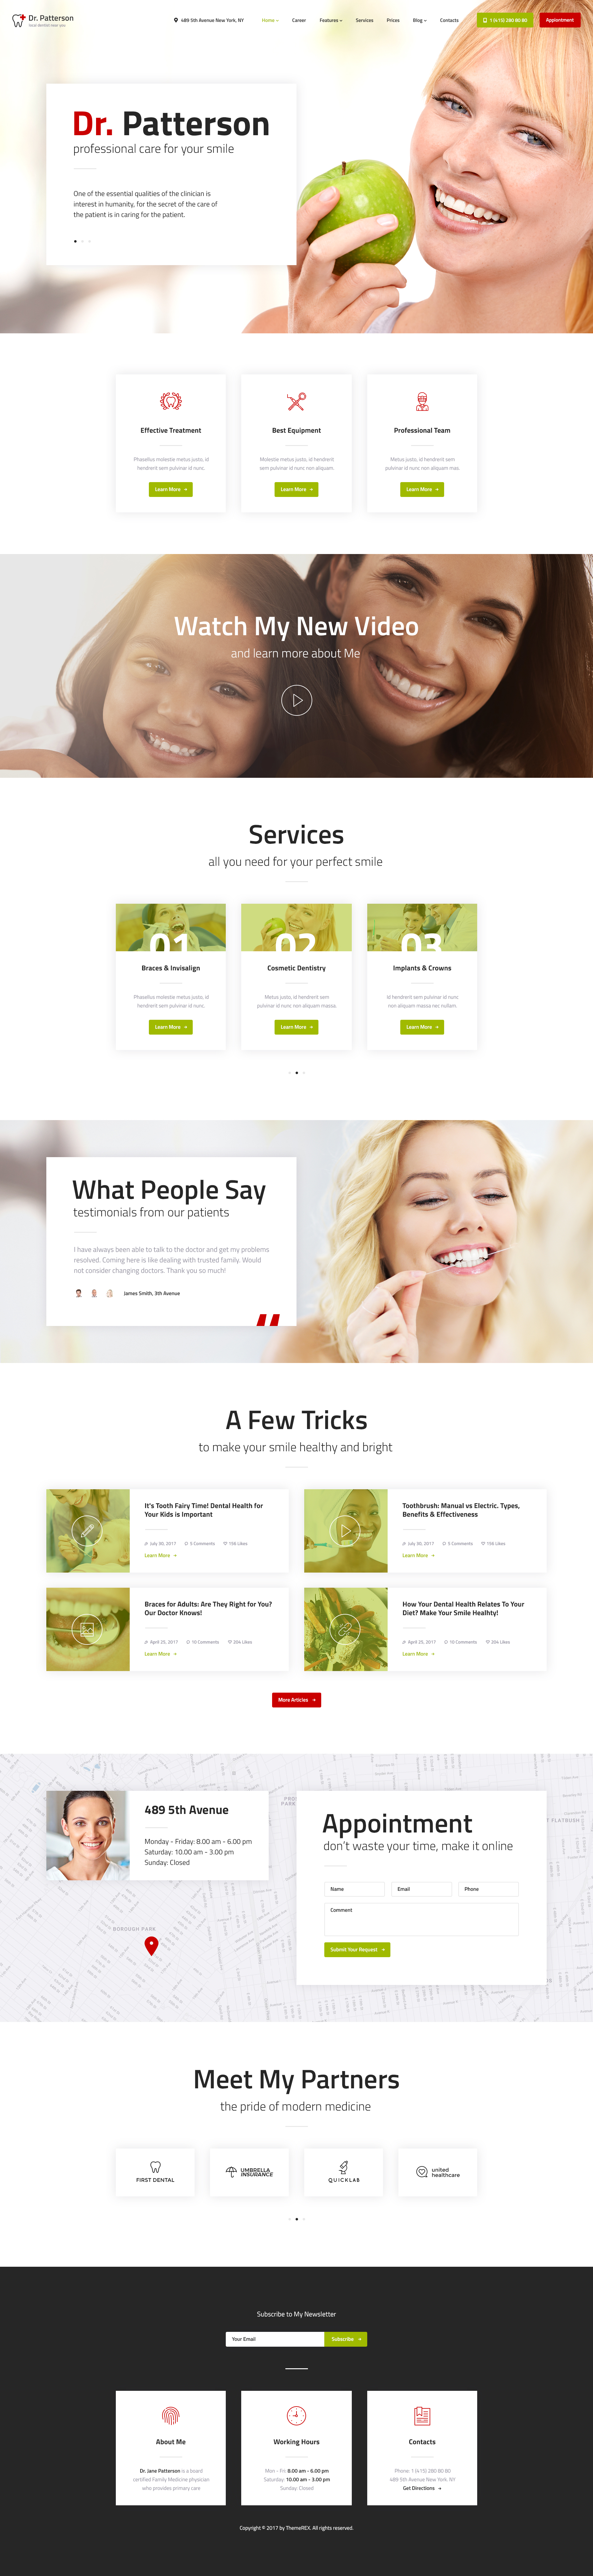 Latest Photo of  Dr.Patterson   Medicine & Healthcare Doctor WordPress Theme